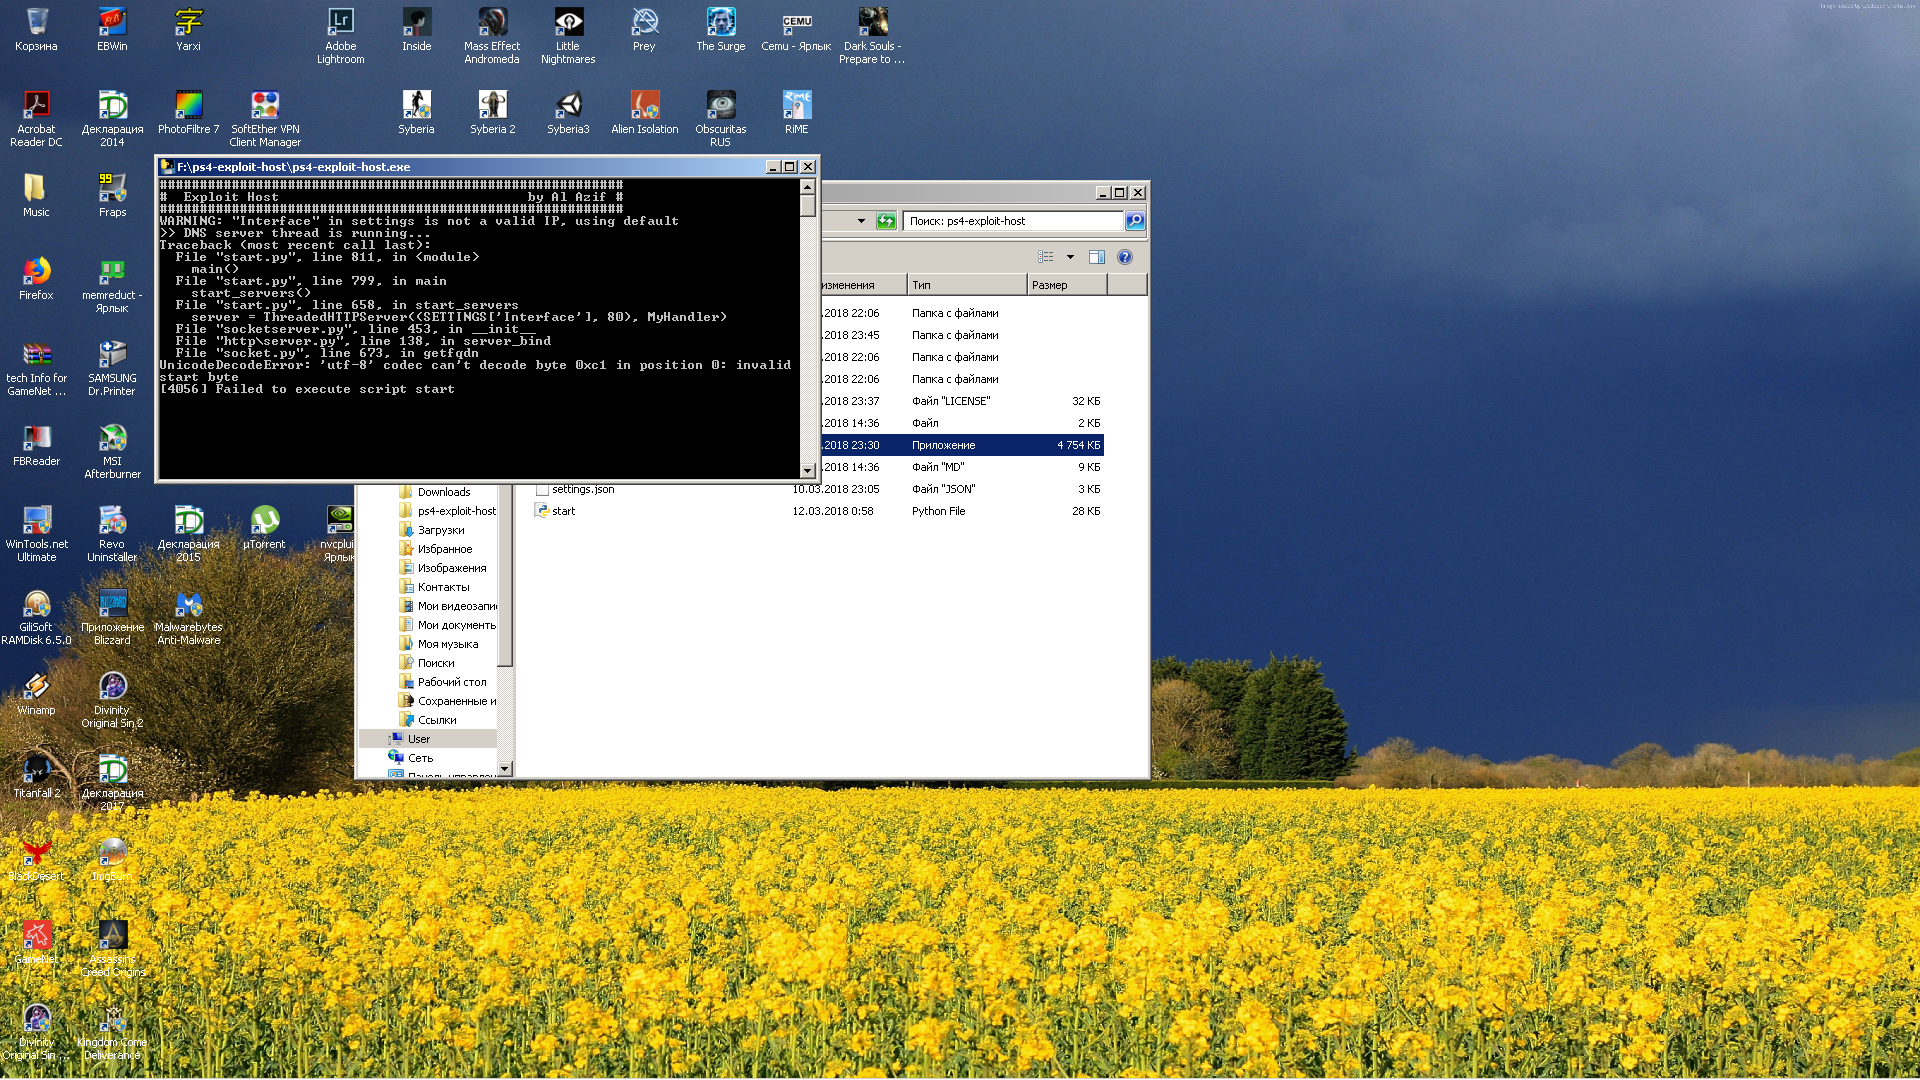 Can't open exploit on win 7 and python file start py · Issue